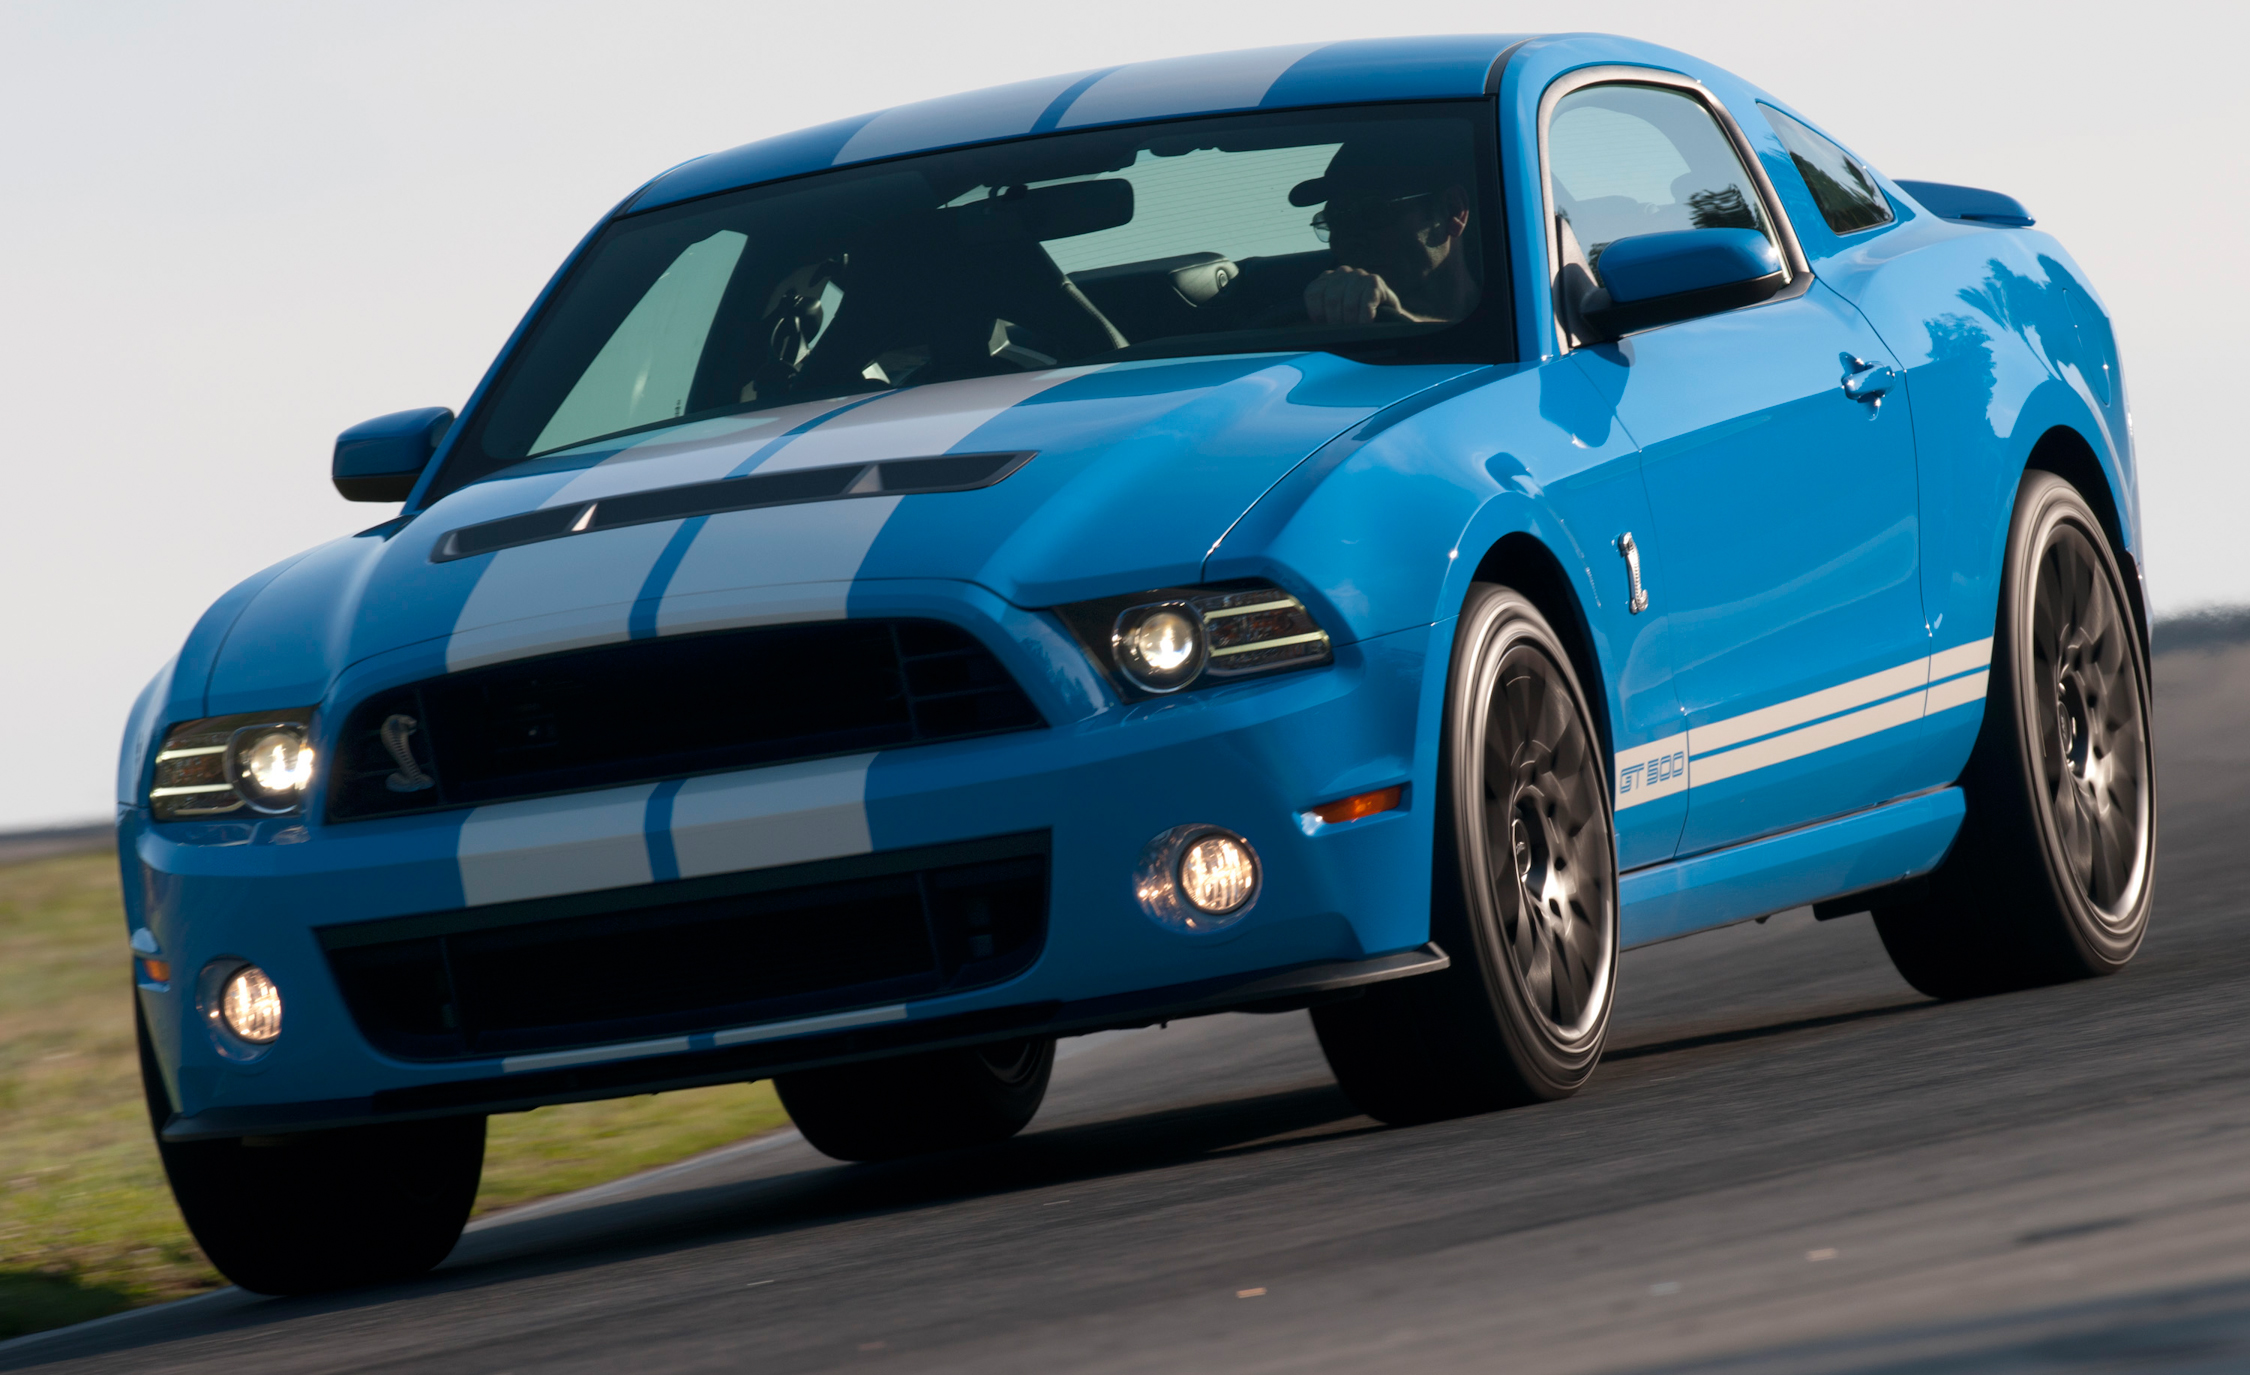 2013 Ford Mustang Shelby GT500 Blue Test Drive Circuit (Photo 9 of 47)